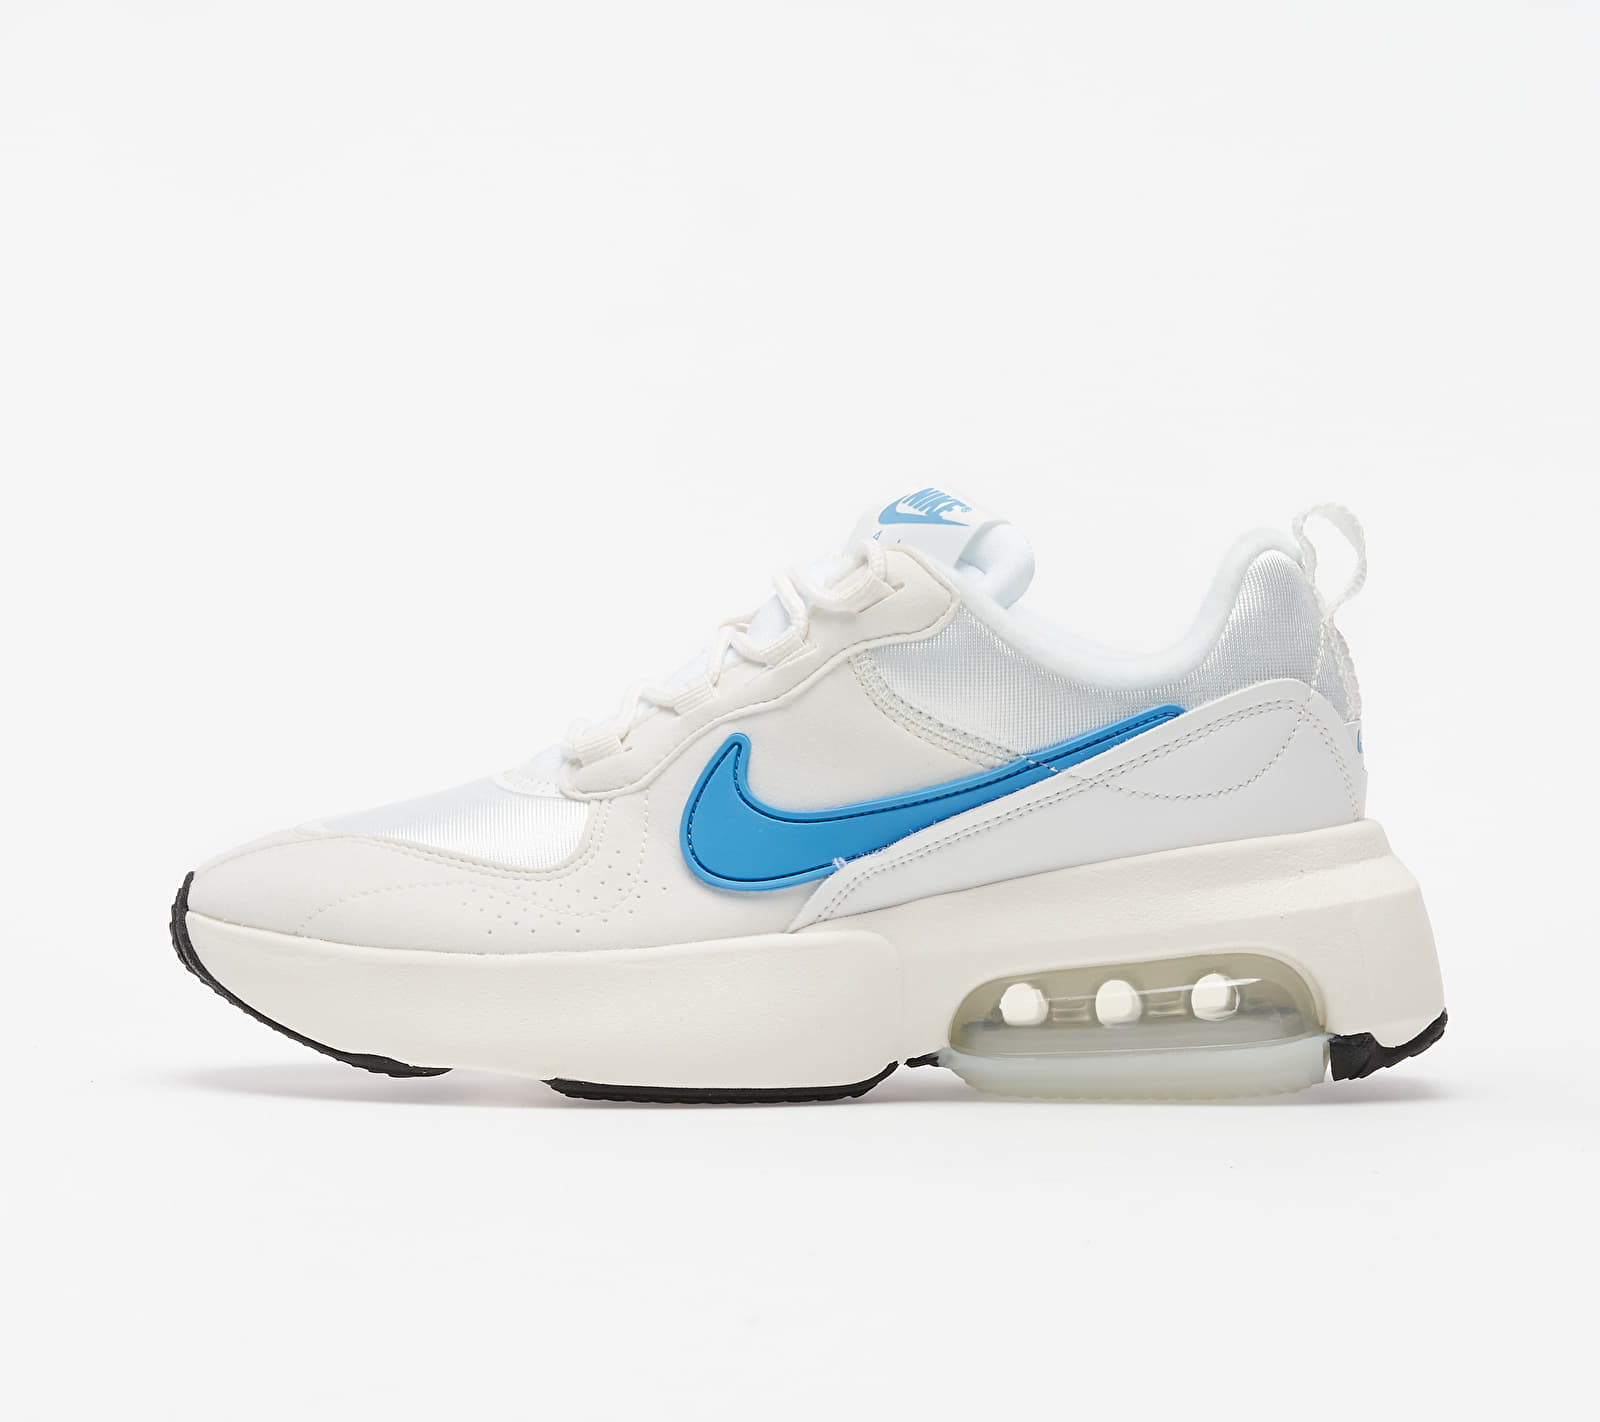 Nike W Air Max Verona Summit White/ Coast-Sail-Platinum Tint EUR 38.5